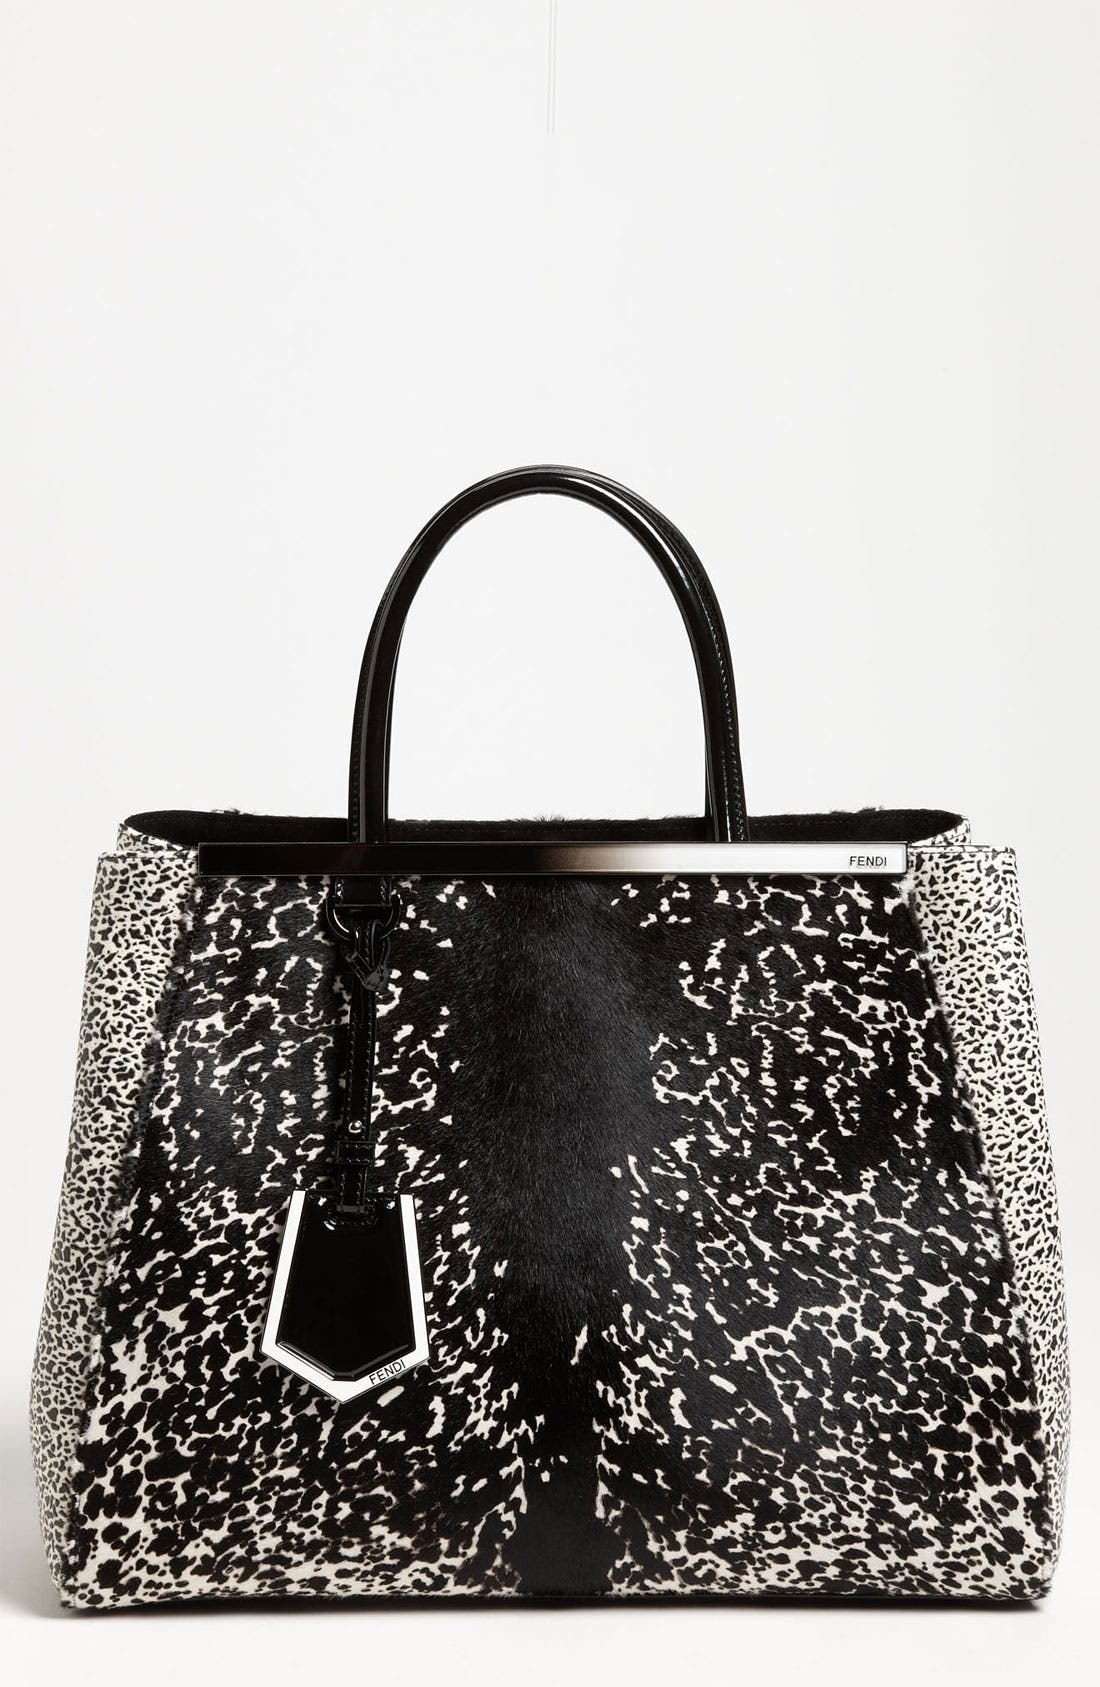 Main Image - Fendi '2Jours' Calf Hair Shopper